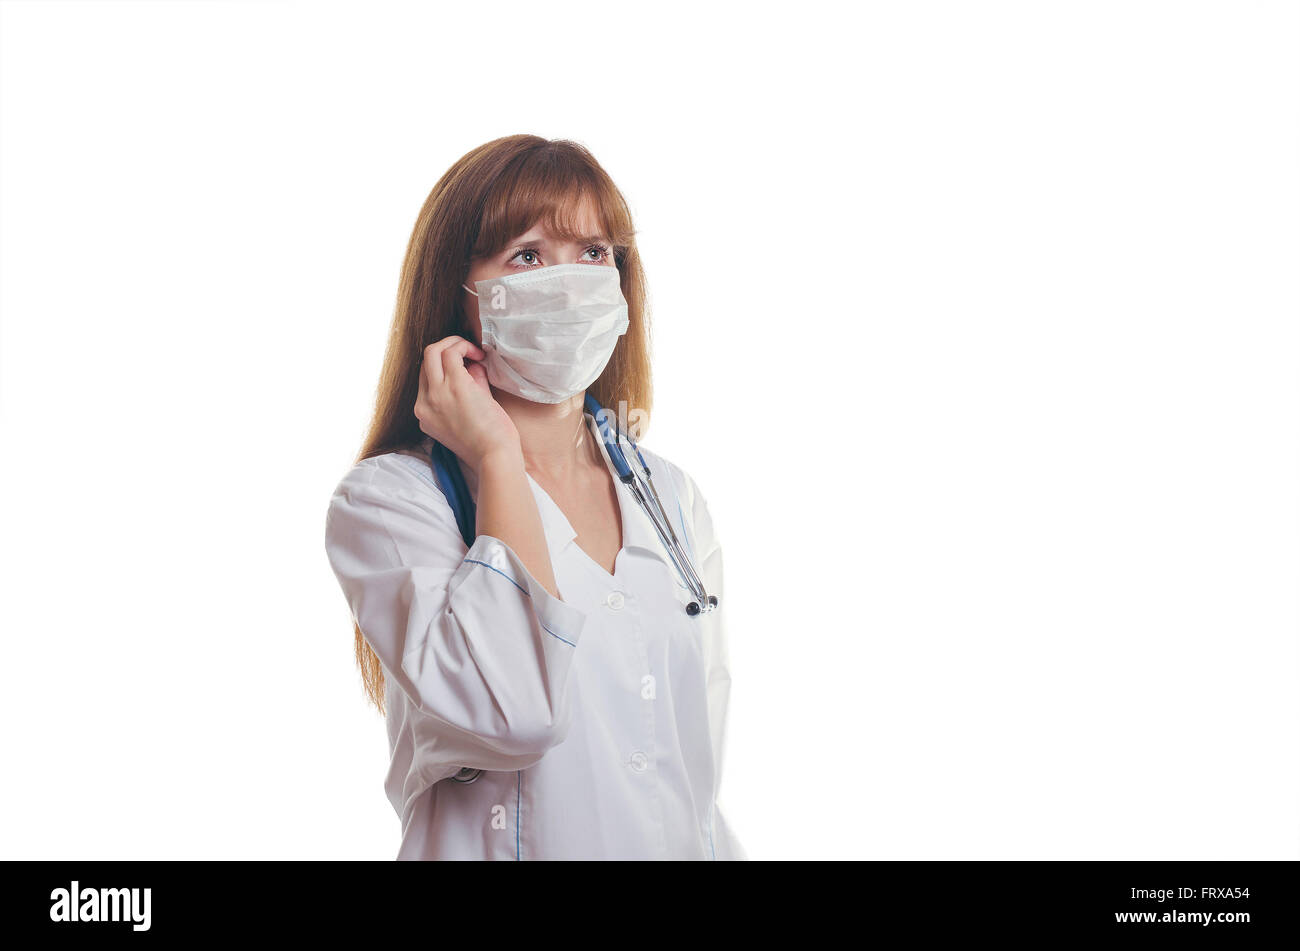 The young doctor in a medical mask - Stock Image